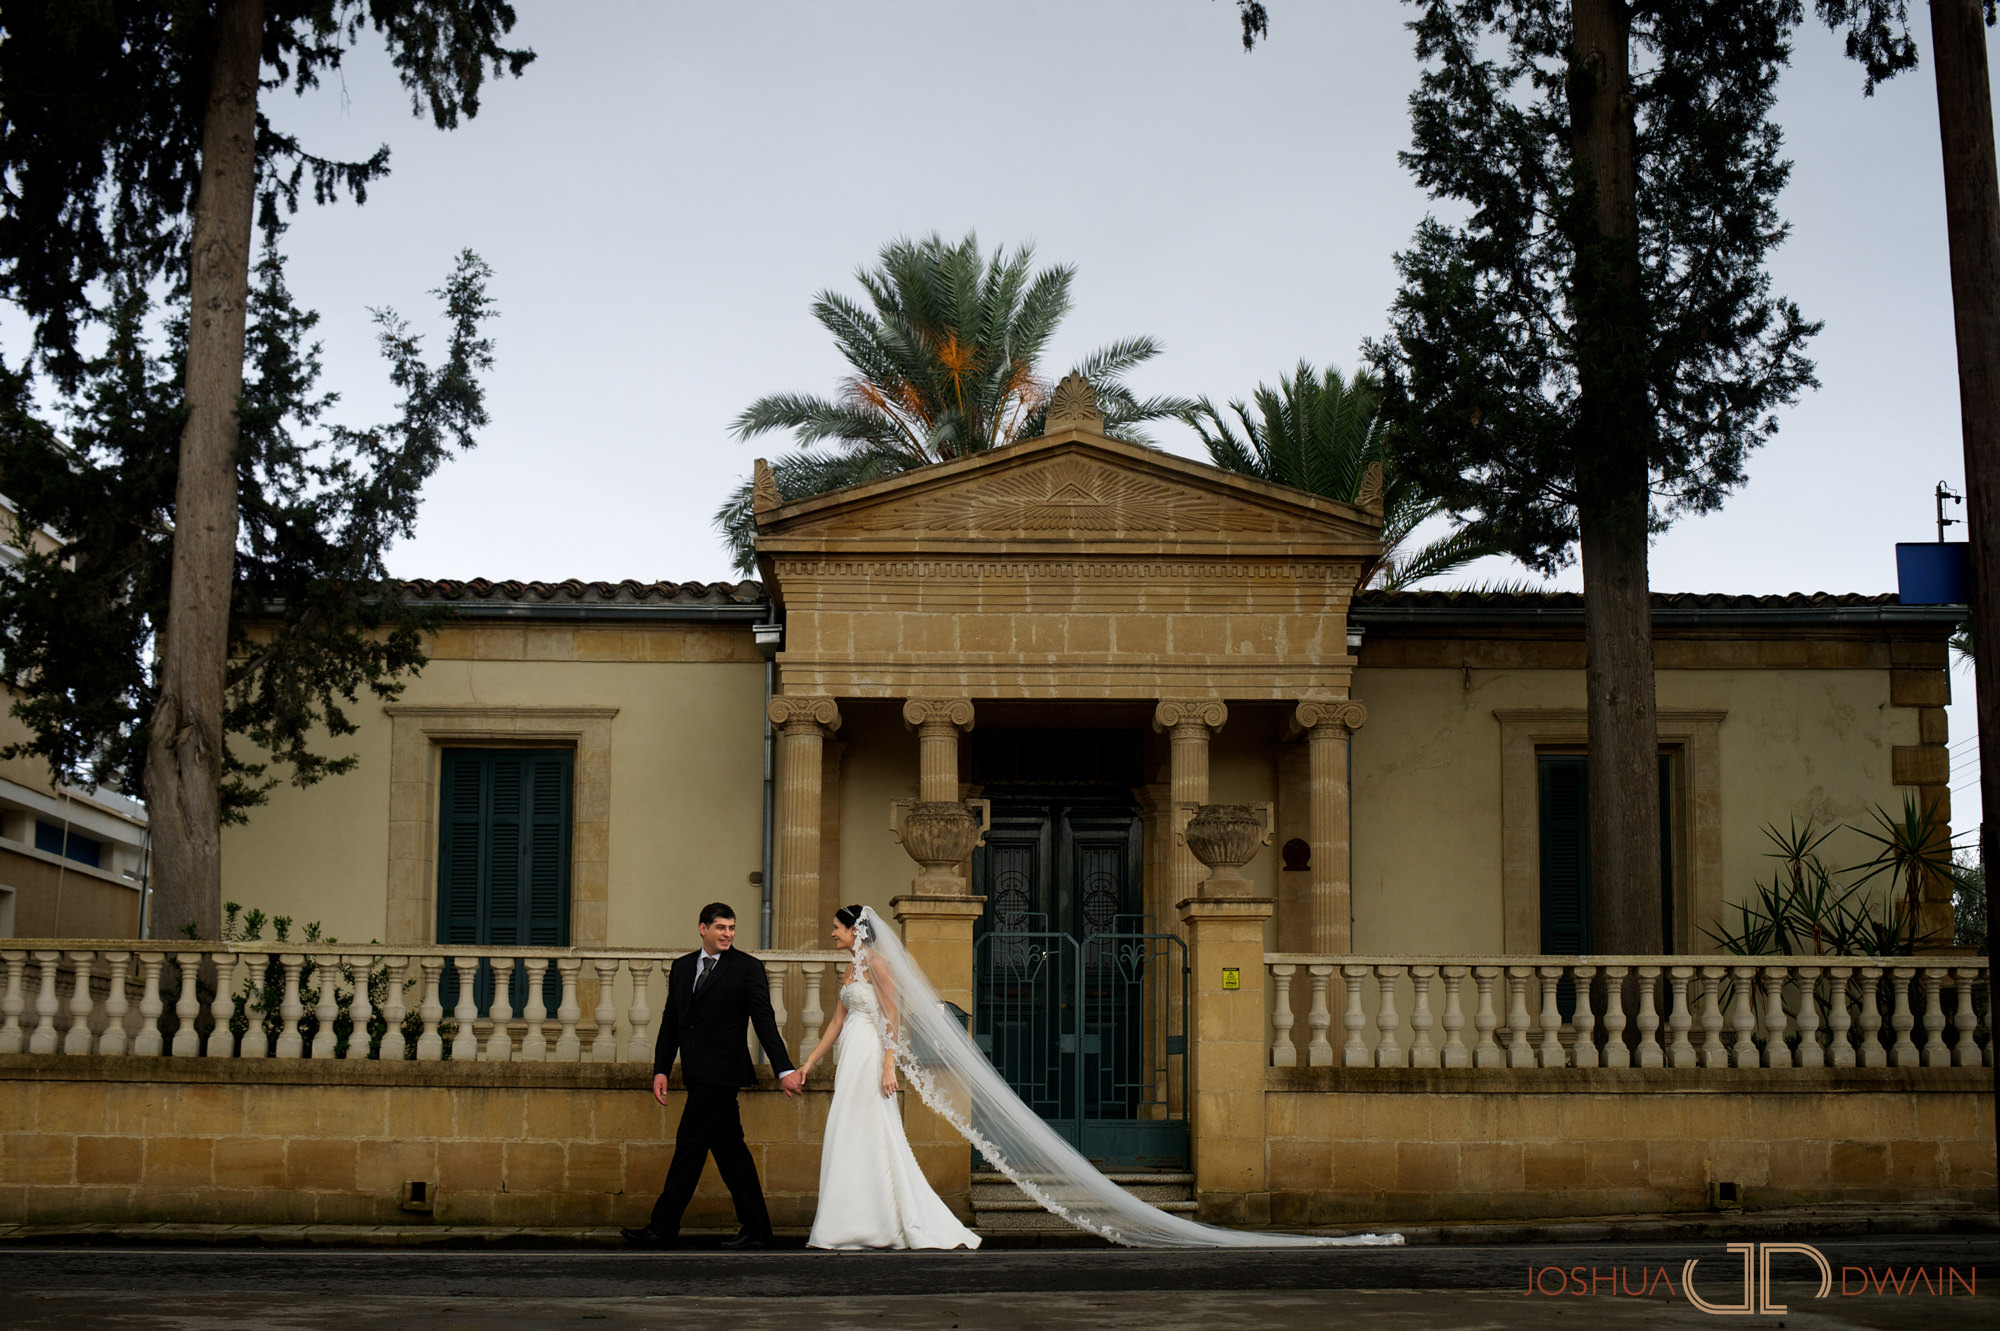 helen-doros-025-famagusta-gate-nicosia-cyprus-wedding-photographer-joshua-dwain-photography-